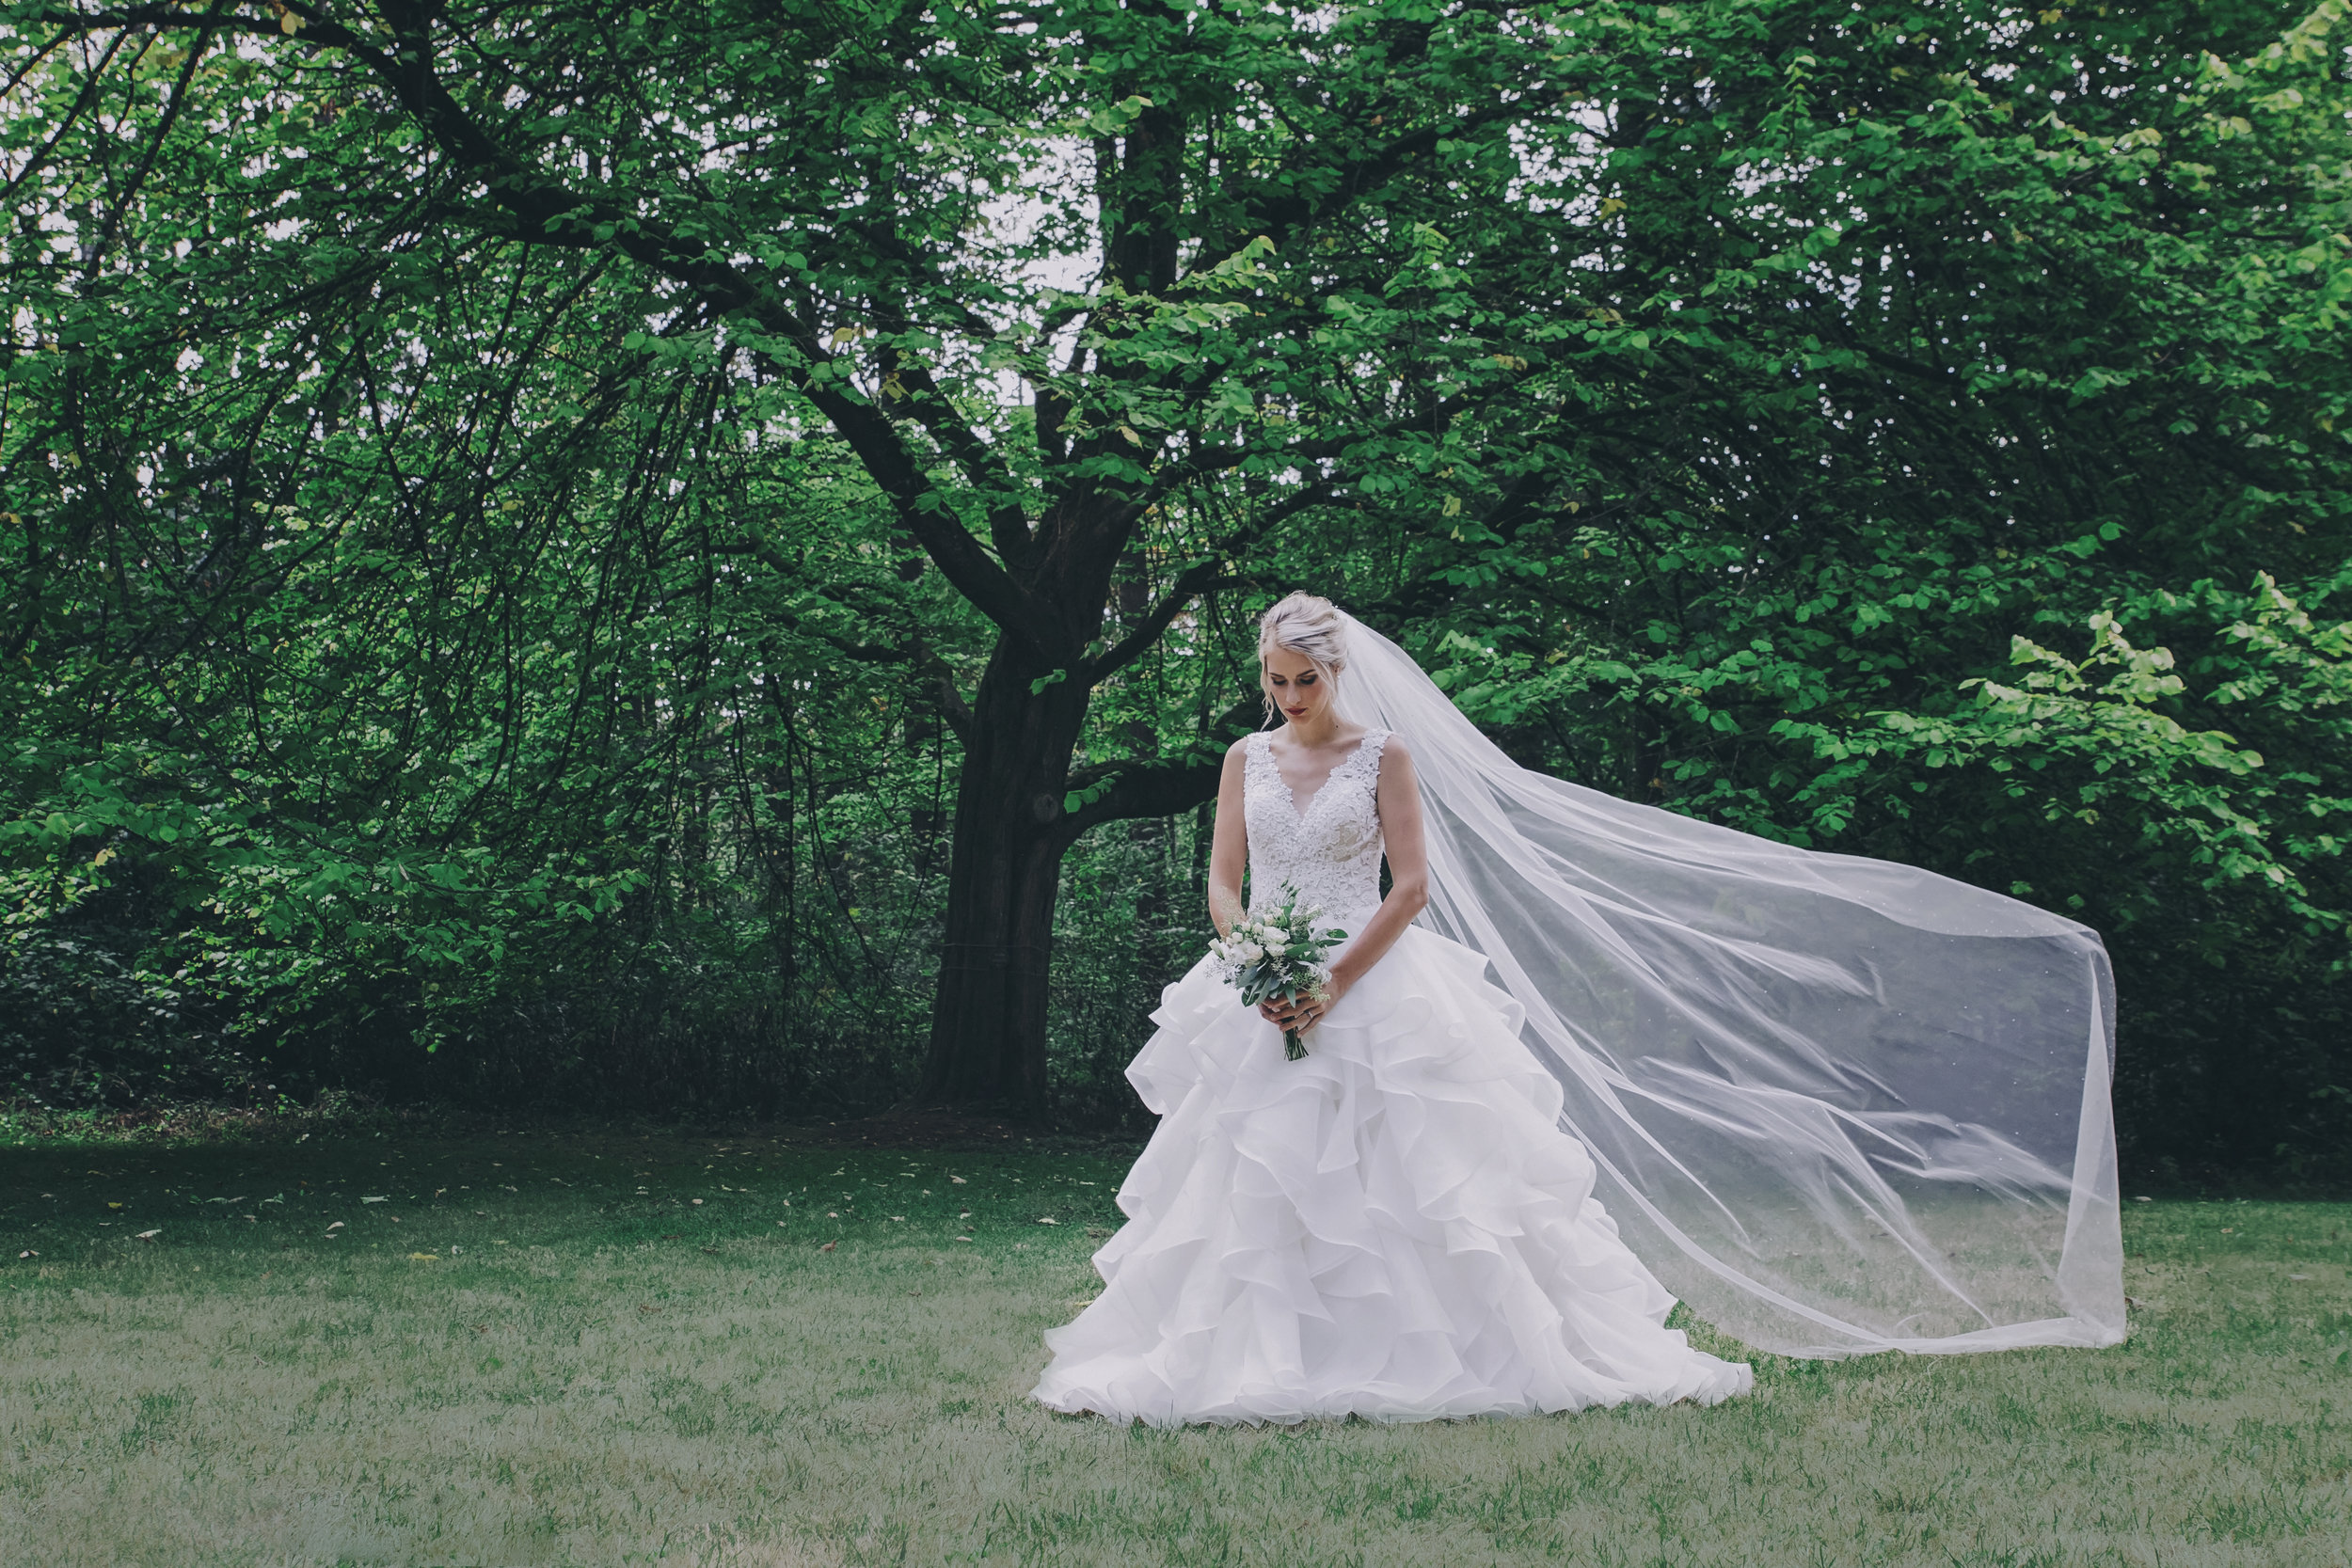 #woodland #wedding #whimsical #ballgown #connection #emotional #fairytale #princess #bride #groom #greywedding #etherealwedding #fairytalewedding #cathedralveil #veil #whitebouquet